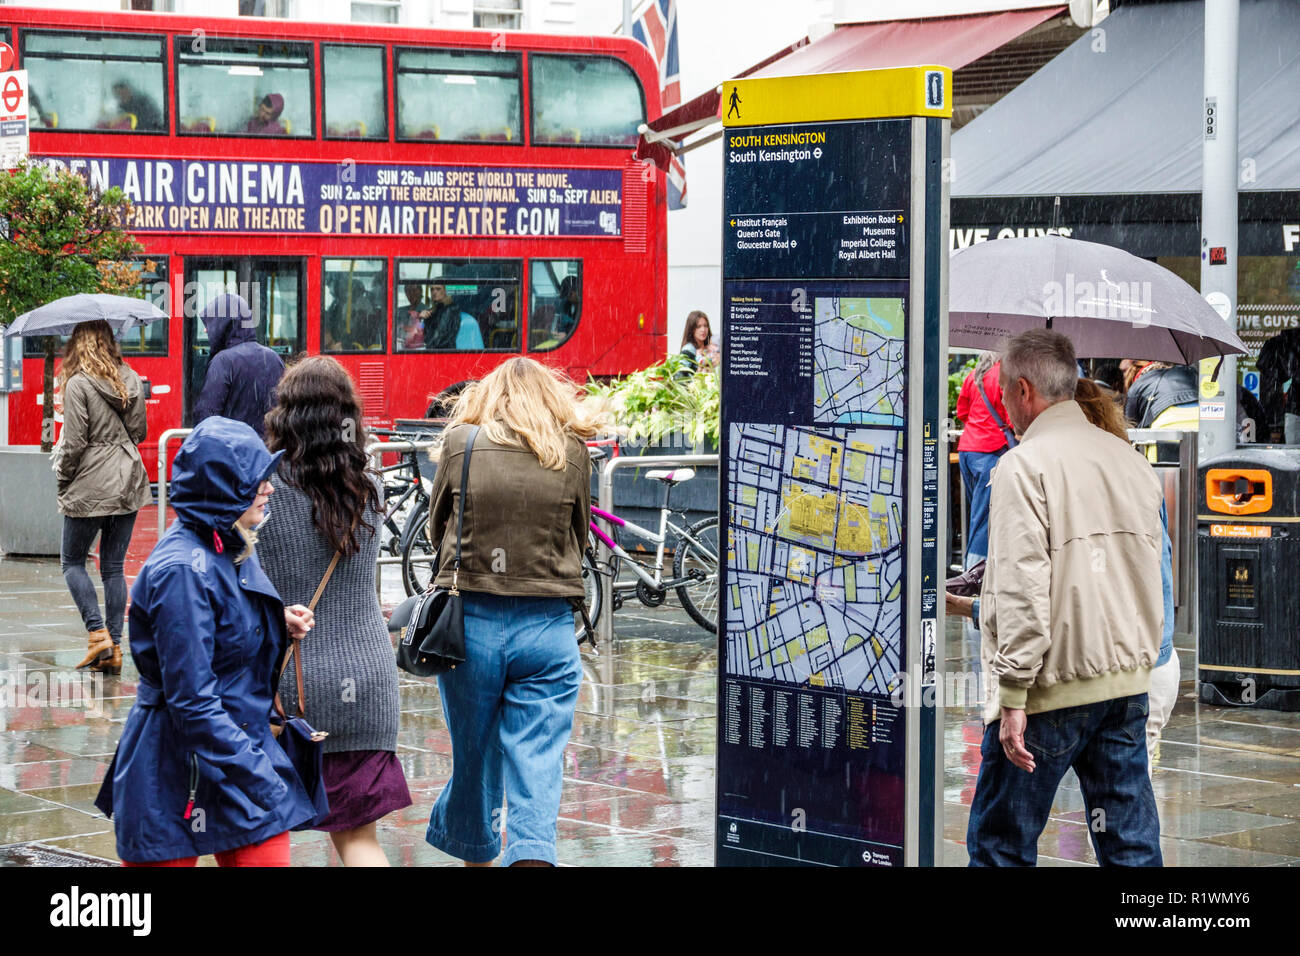 London England United Kingdom Great Britain South Kensington weather rain raining wet pavement umbrellas man woman pedestrian Legible London Wayfaring - Stock Image